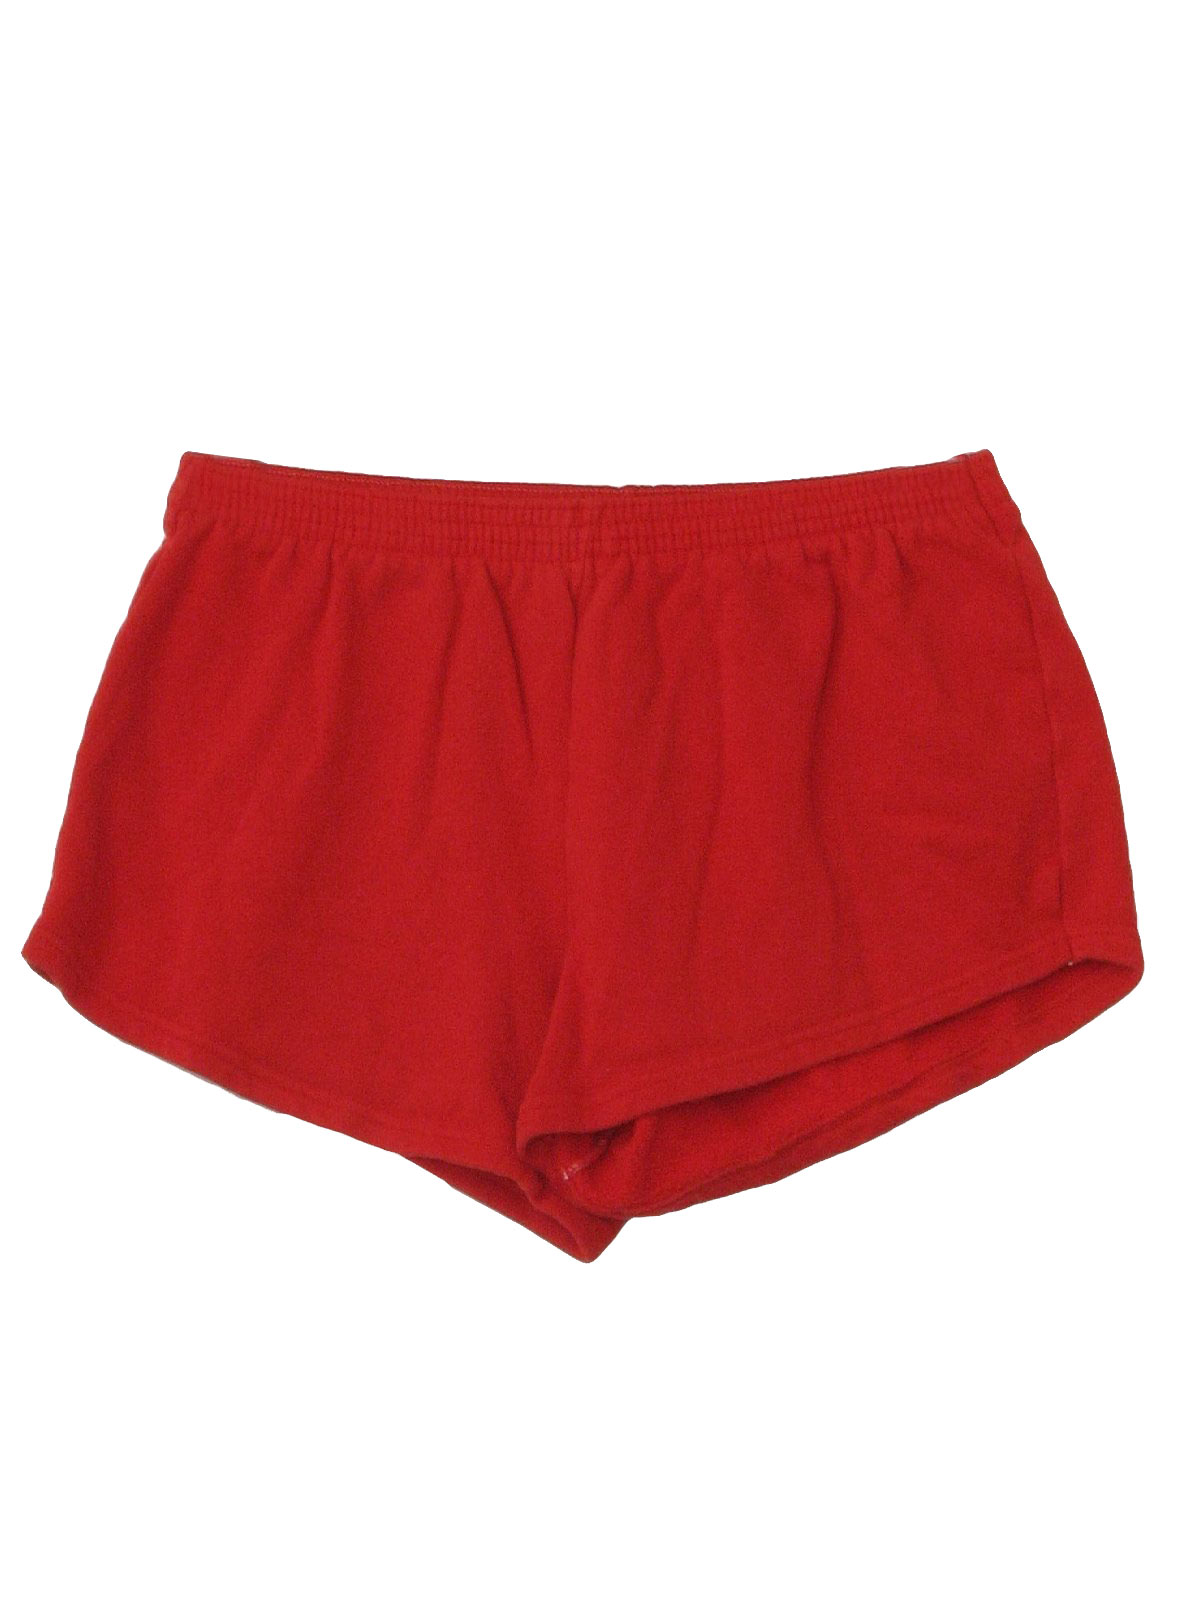 1980's Shorts (Pannill): 80s -Pannill- Mens red cotton elastic ...